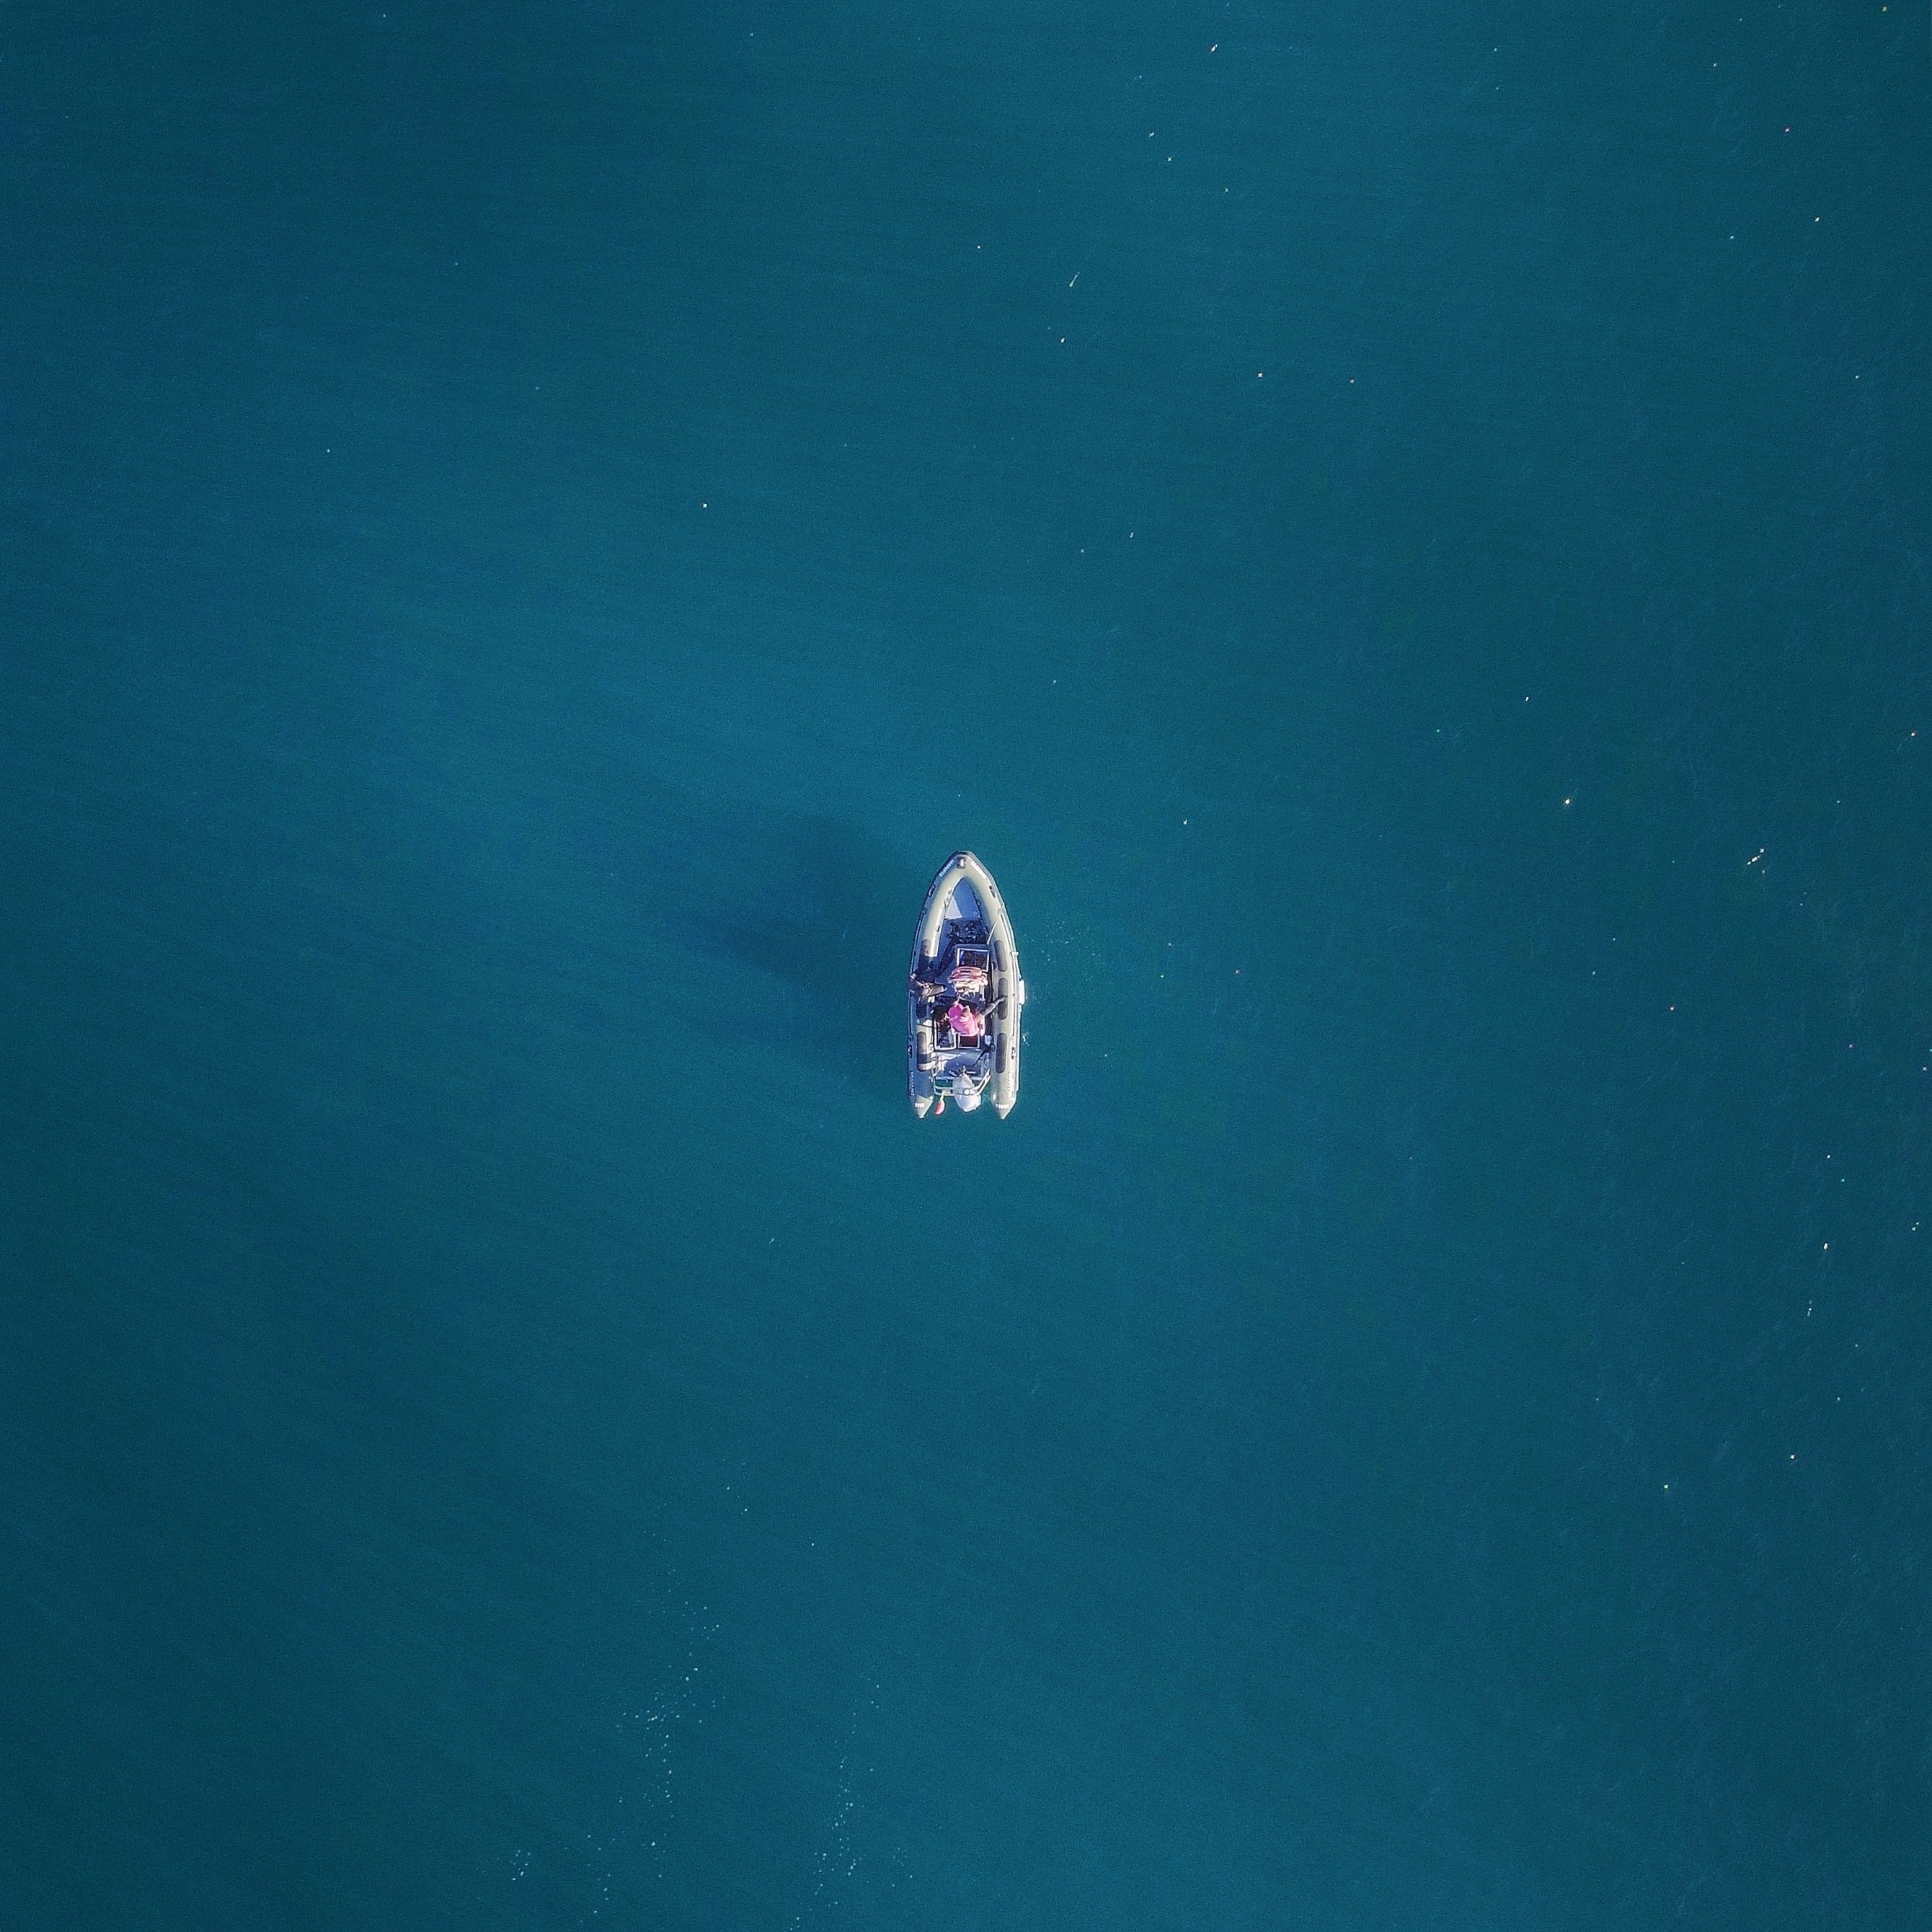 aerial photography of boat with person riding